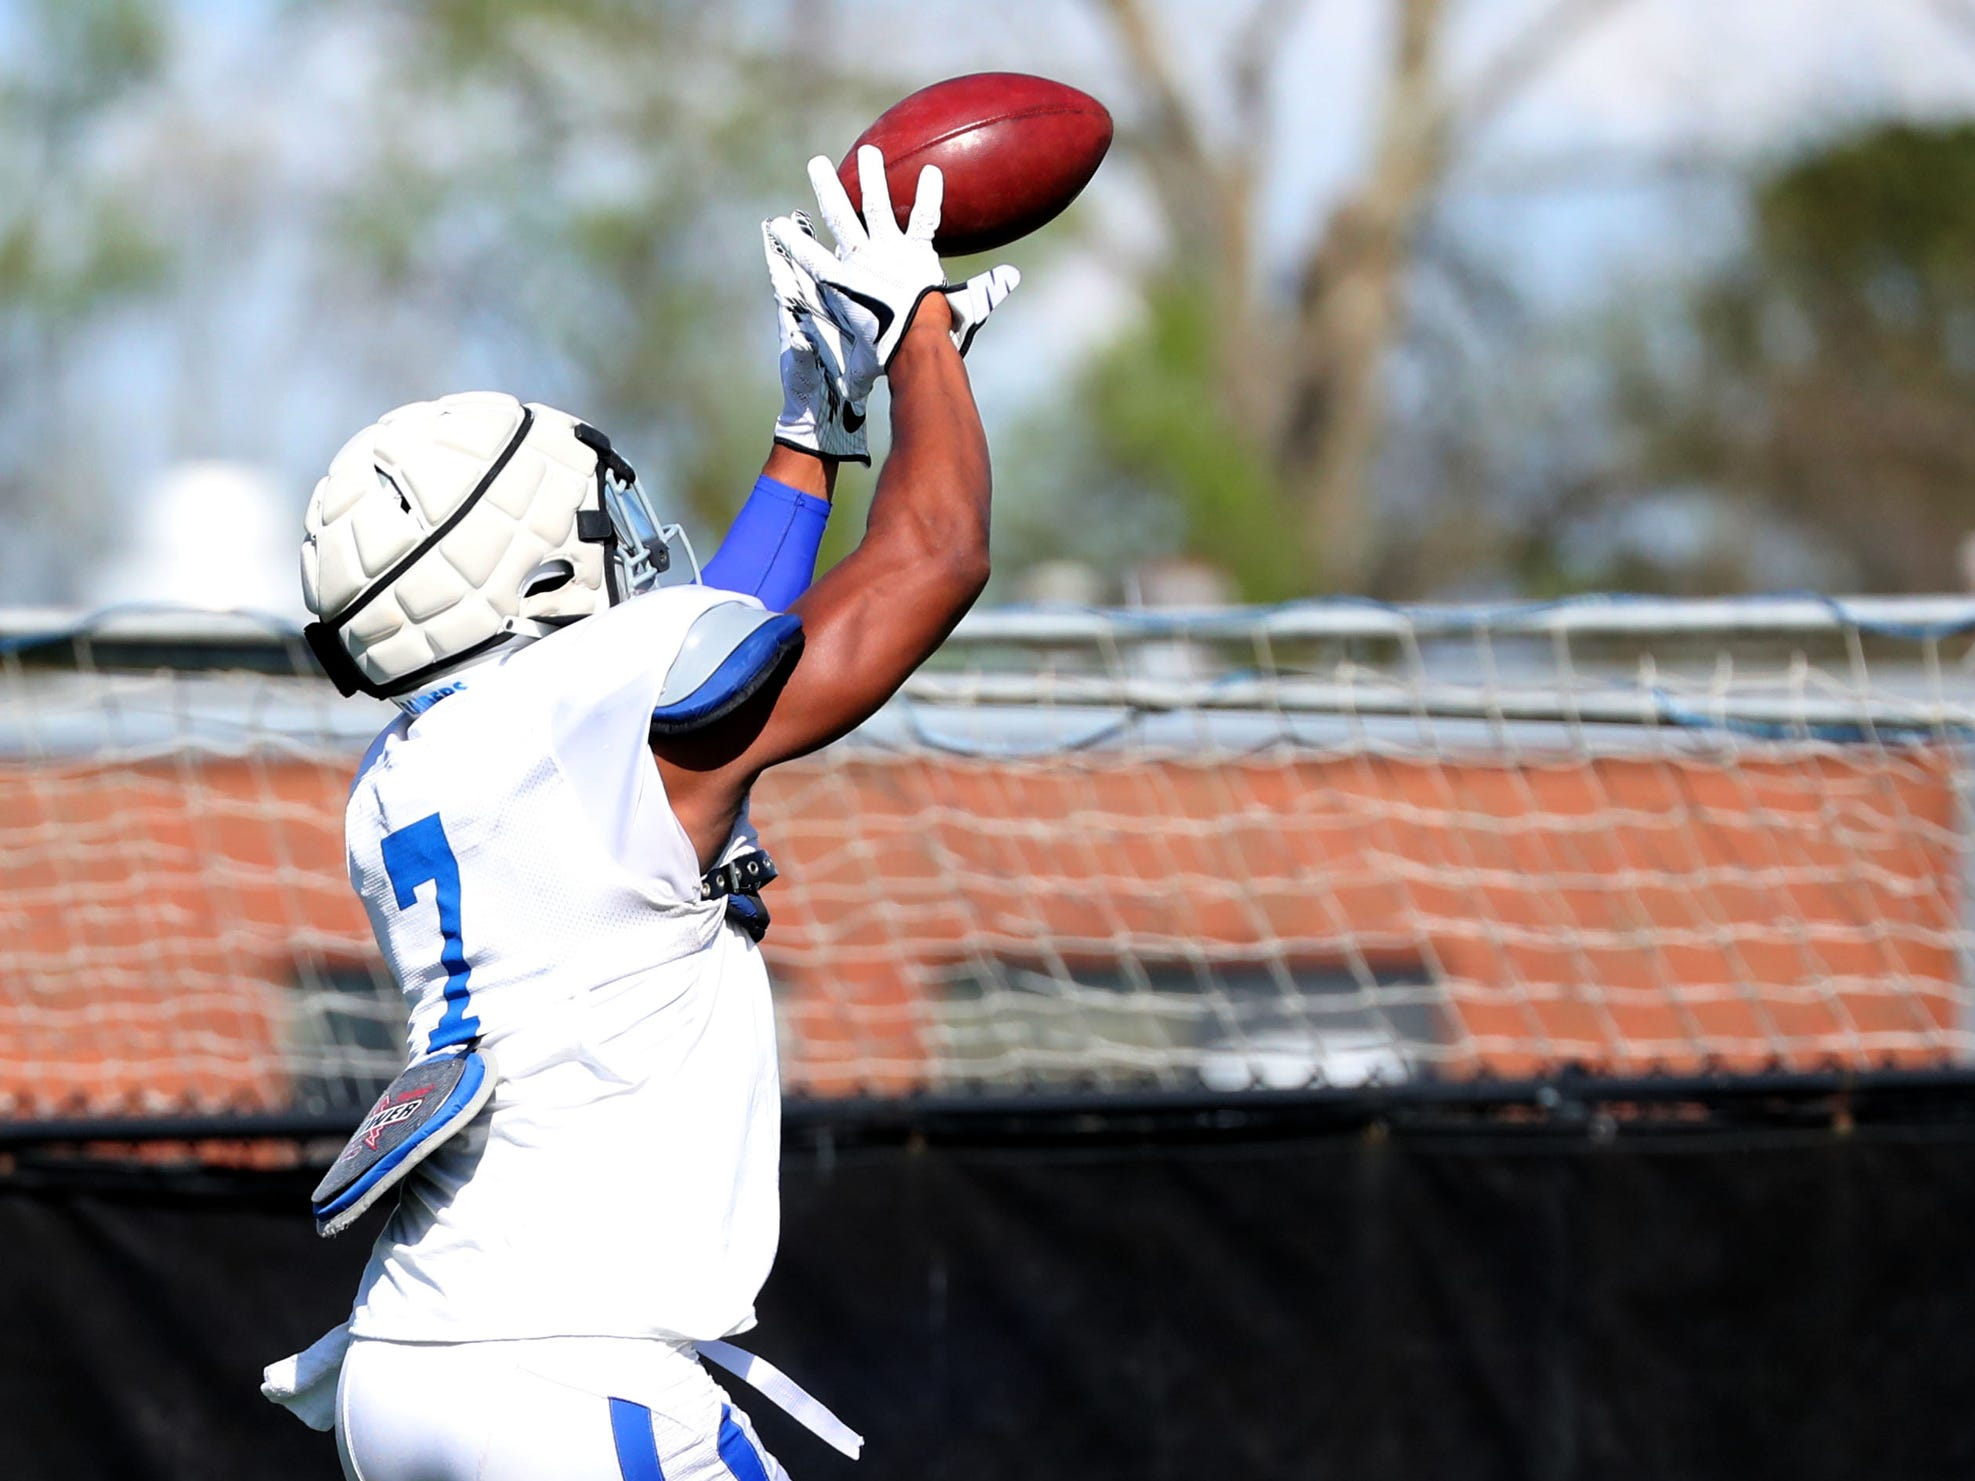 MTSU's safety Jovante Moffatt (7) grabs the ball during a drill at MTSU's football practice, in Murfreesboro on Tuesday April 9, 2019.